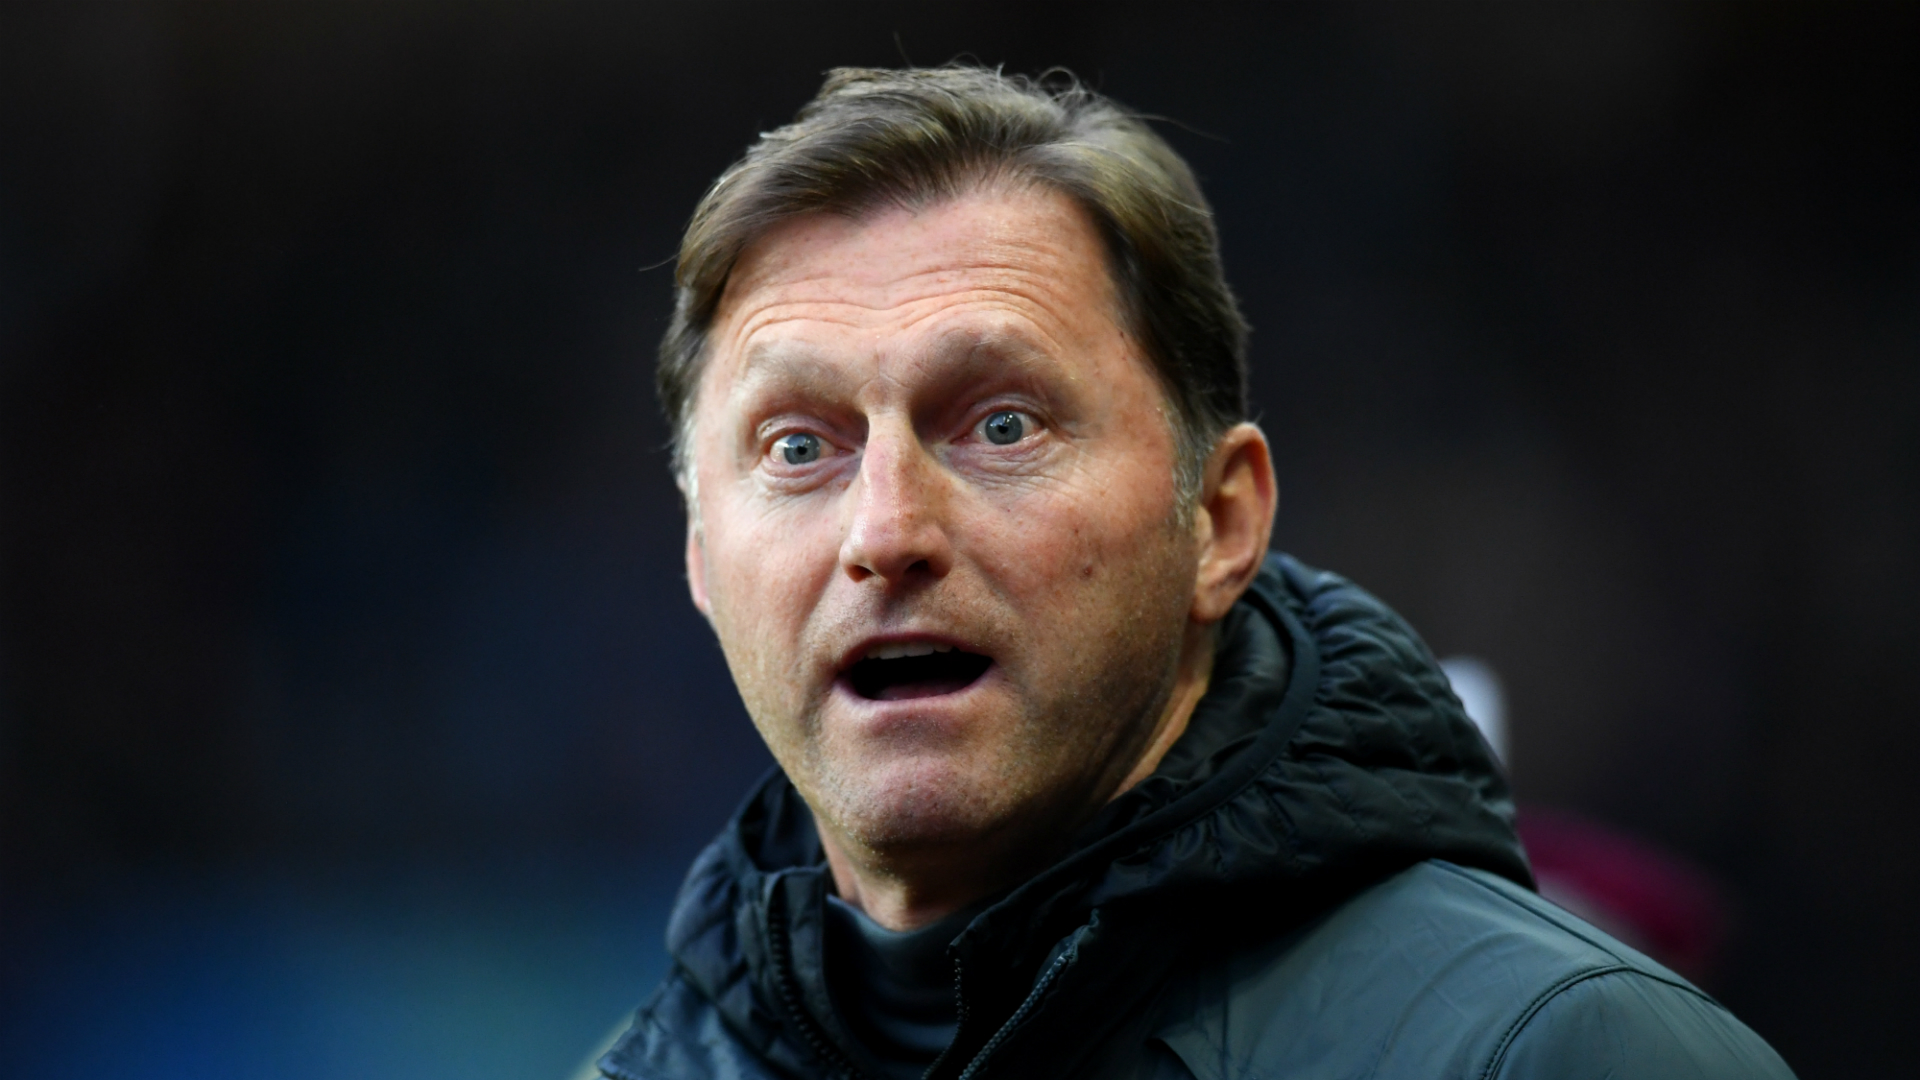 Saints boss Hasenhuttl absent for West Ham game due to COVID-19 case in his household